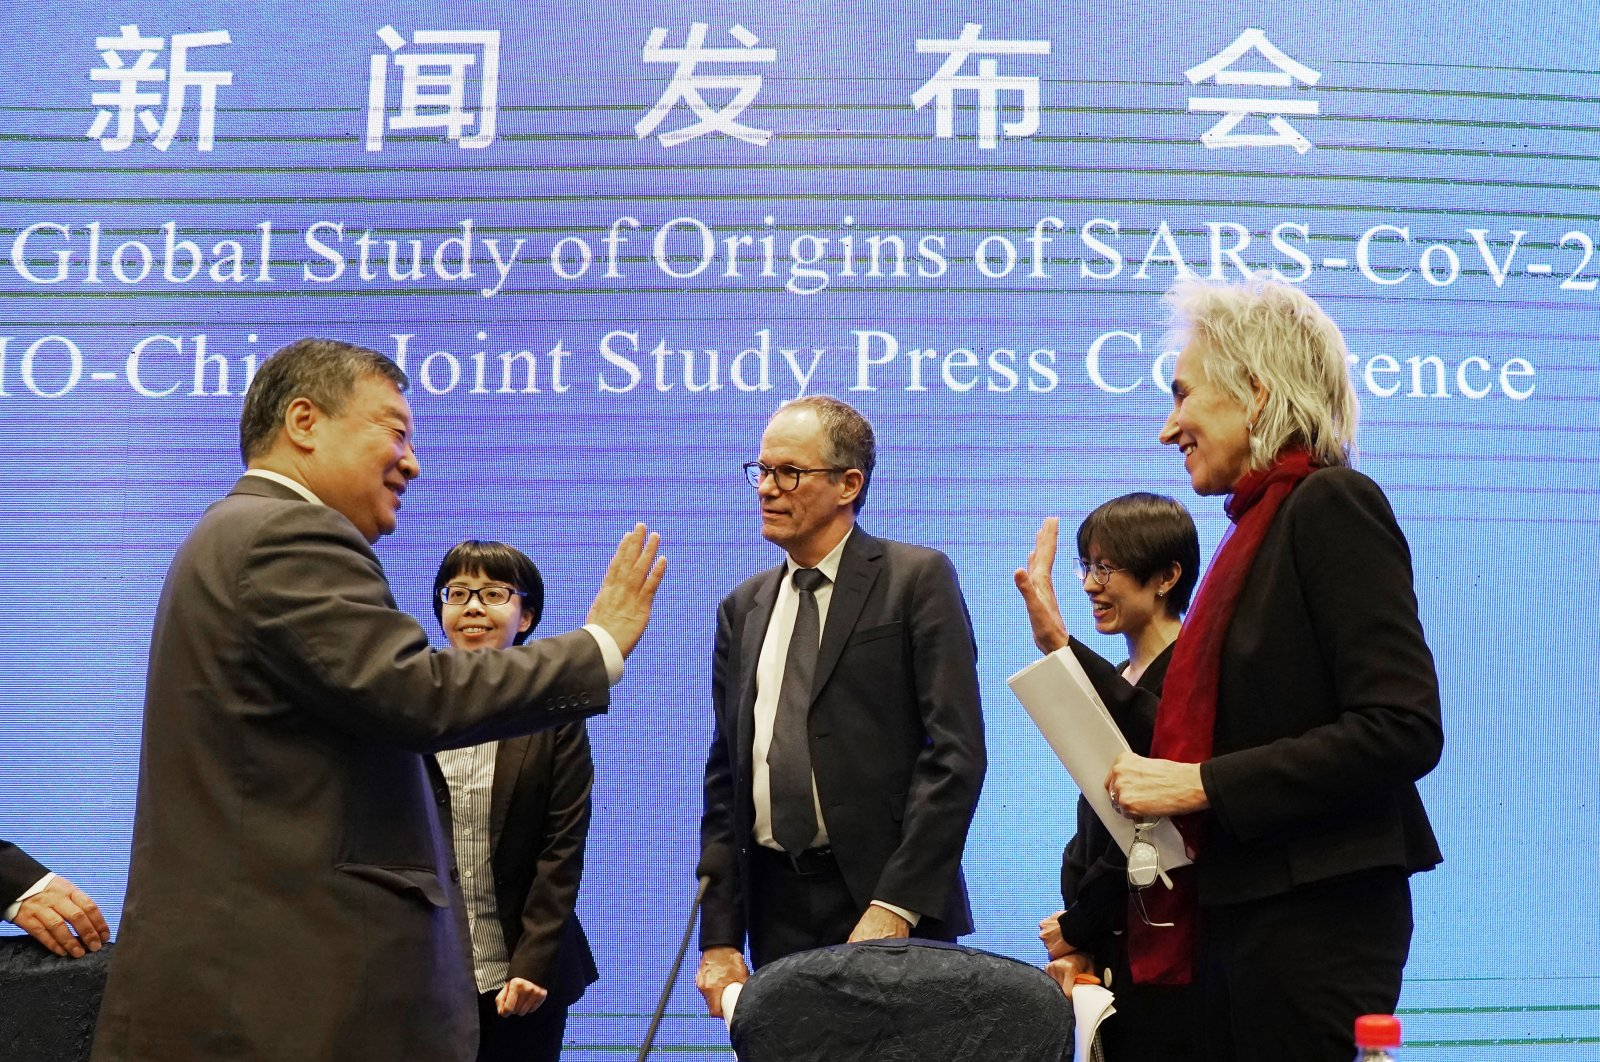 Members of the World Health Organization (WHO) team Marion Koopmans (R) and Peter Ben Embarek say farewell to their Chinese counterpart Liang Wannian (L), after a WHO-China Joint Study Press Conference held at the end of the WHO mission in Wuhan, China, Tuesday, Feb. 9, 2021. (AP Photo)